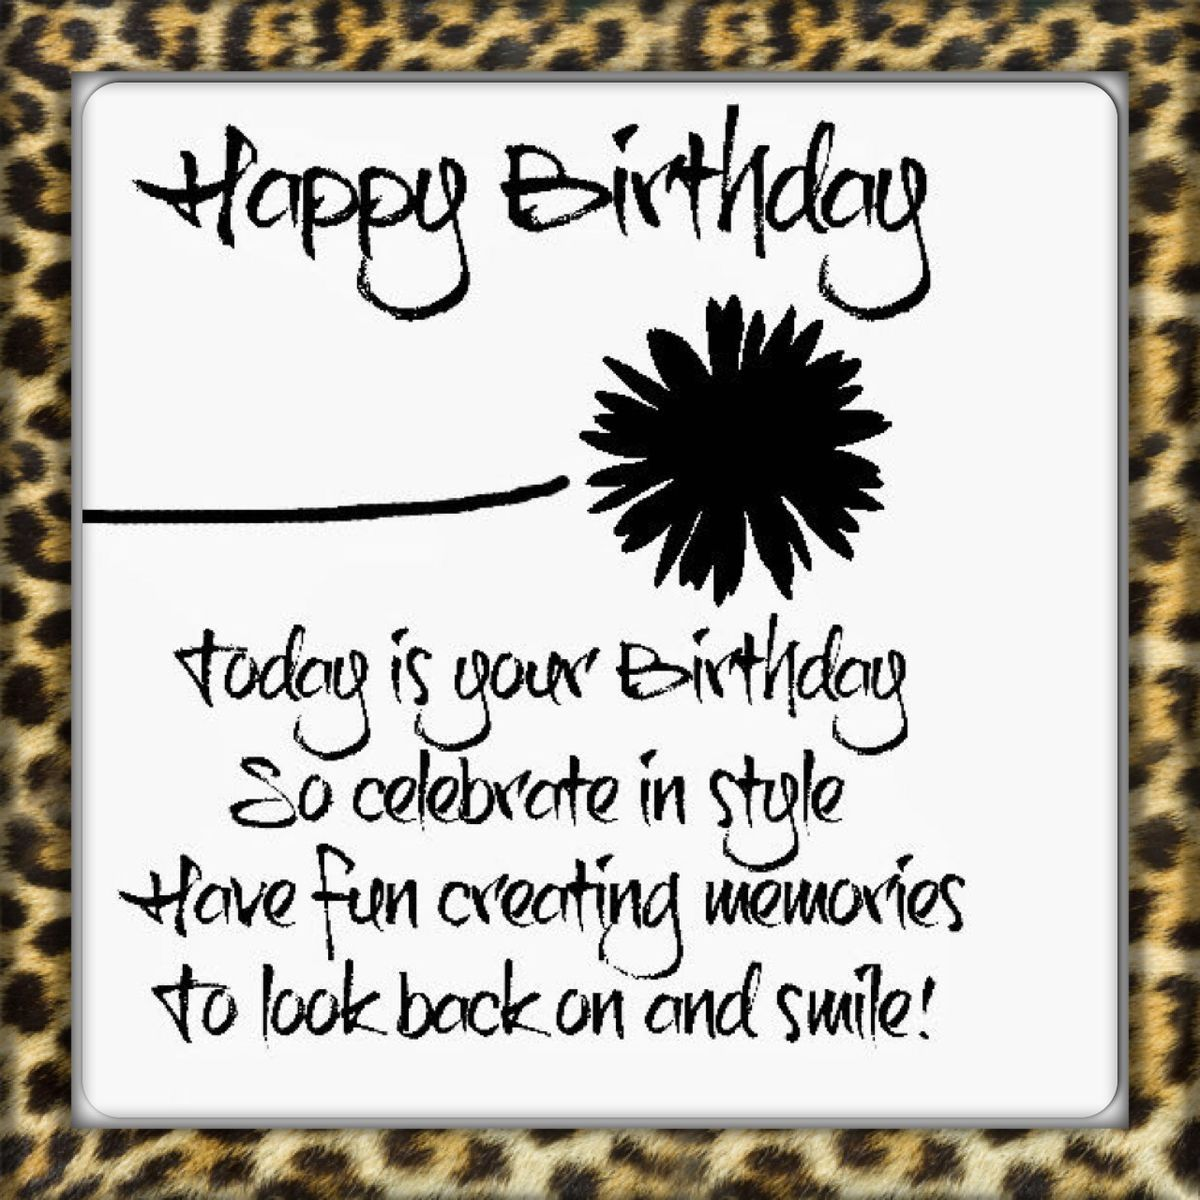 Pin By Janice Schachner On Card Verses Pinterest Happy Birthday